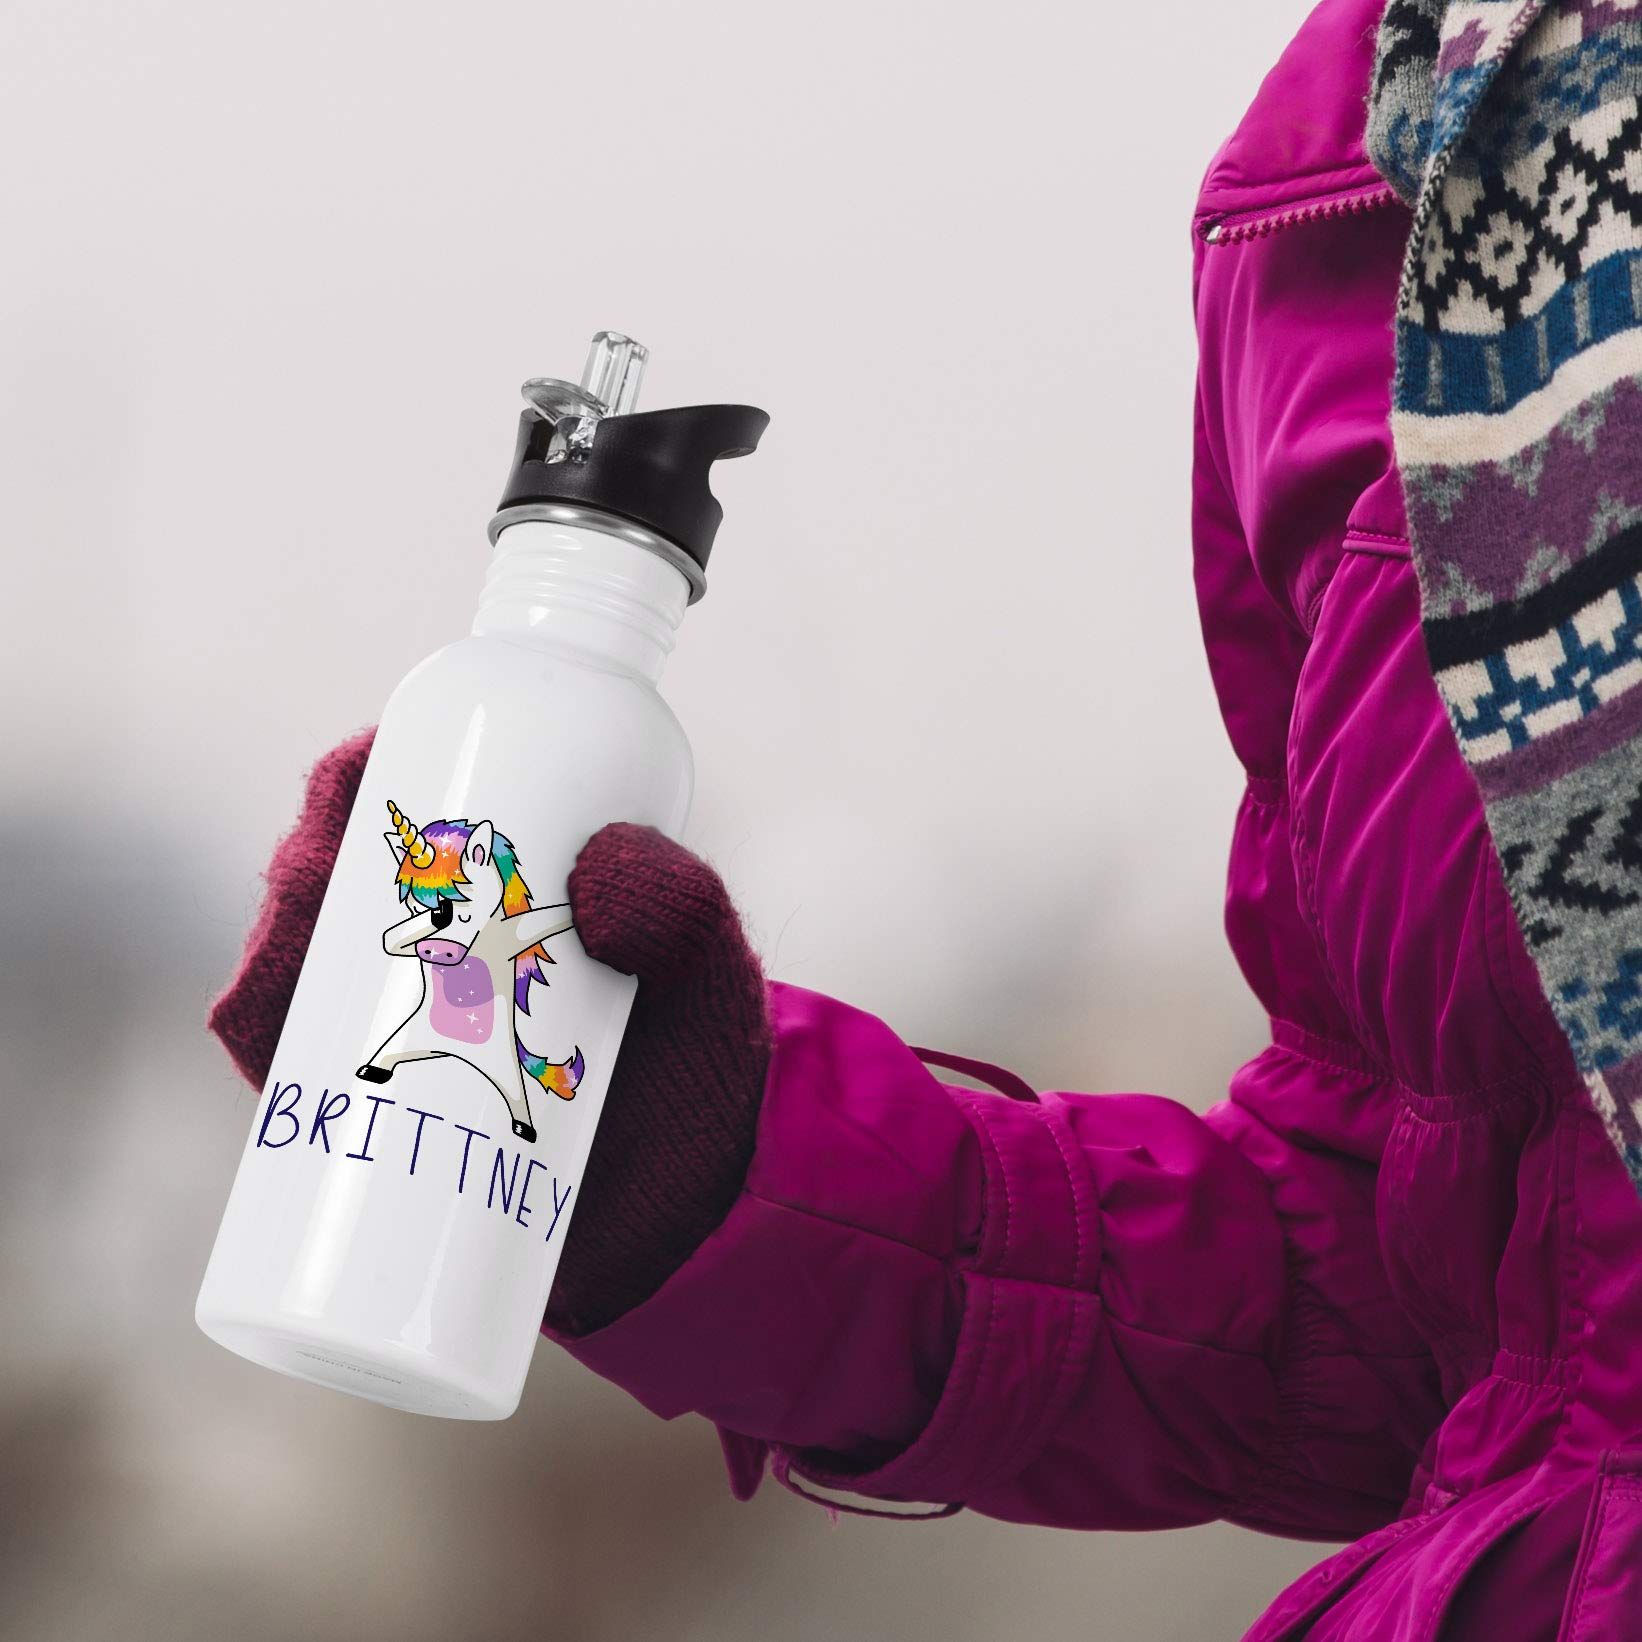 Personalized Gifts Dabbing Unicorn Coffee Mug - 16oz Stainless Steel Sport Water Bottle Tumbler with Lid and Straw -Birthday Gifts, Christmas Gifts, Mother's Day Gifts, Father's Day Gifts by USA Custom Gifts (Image #3)